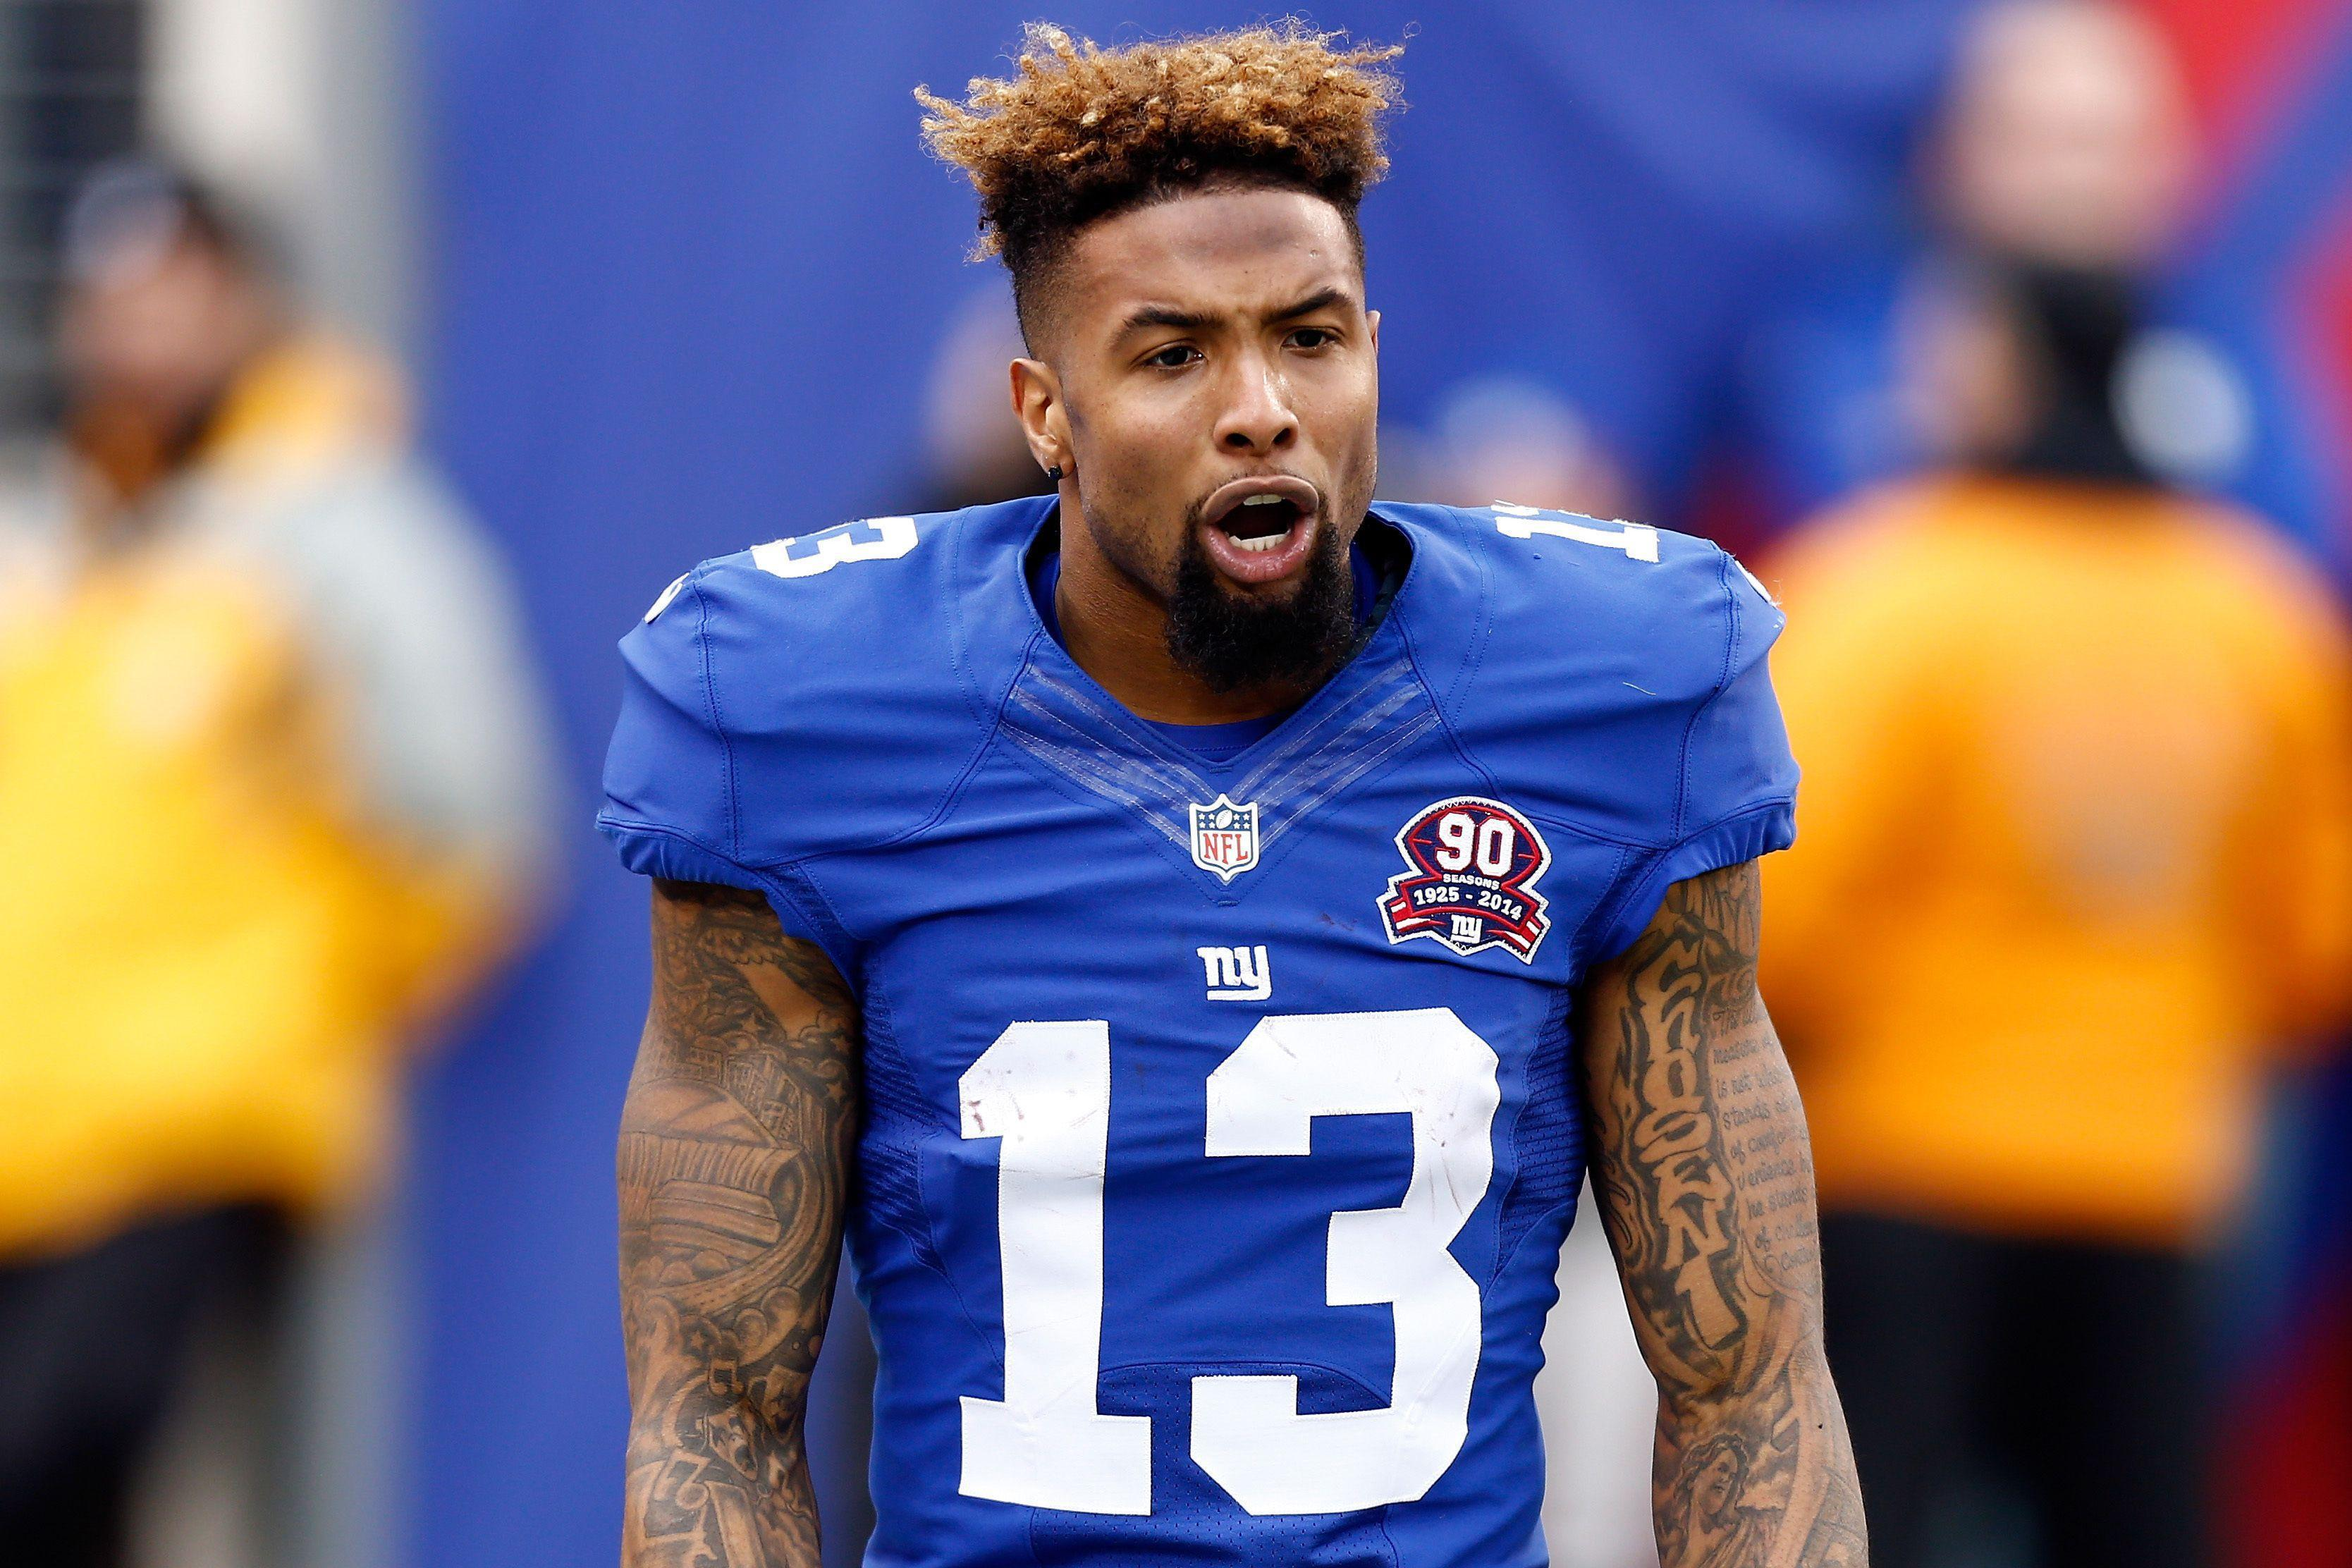 Odell Beckham Jr may not speak French but he knows how to get his message across to the femmes